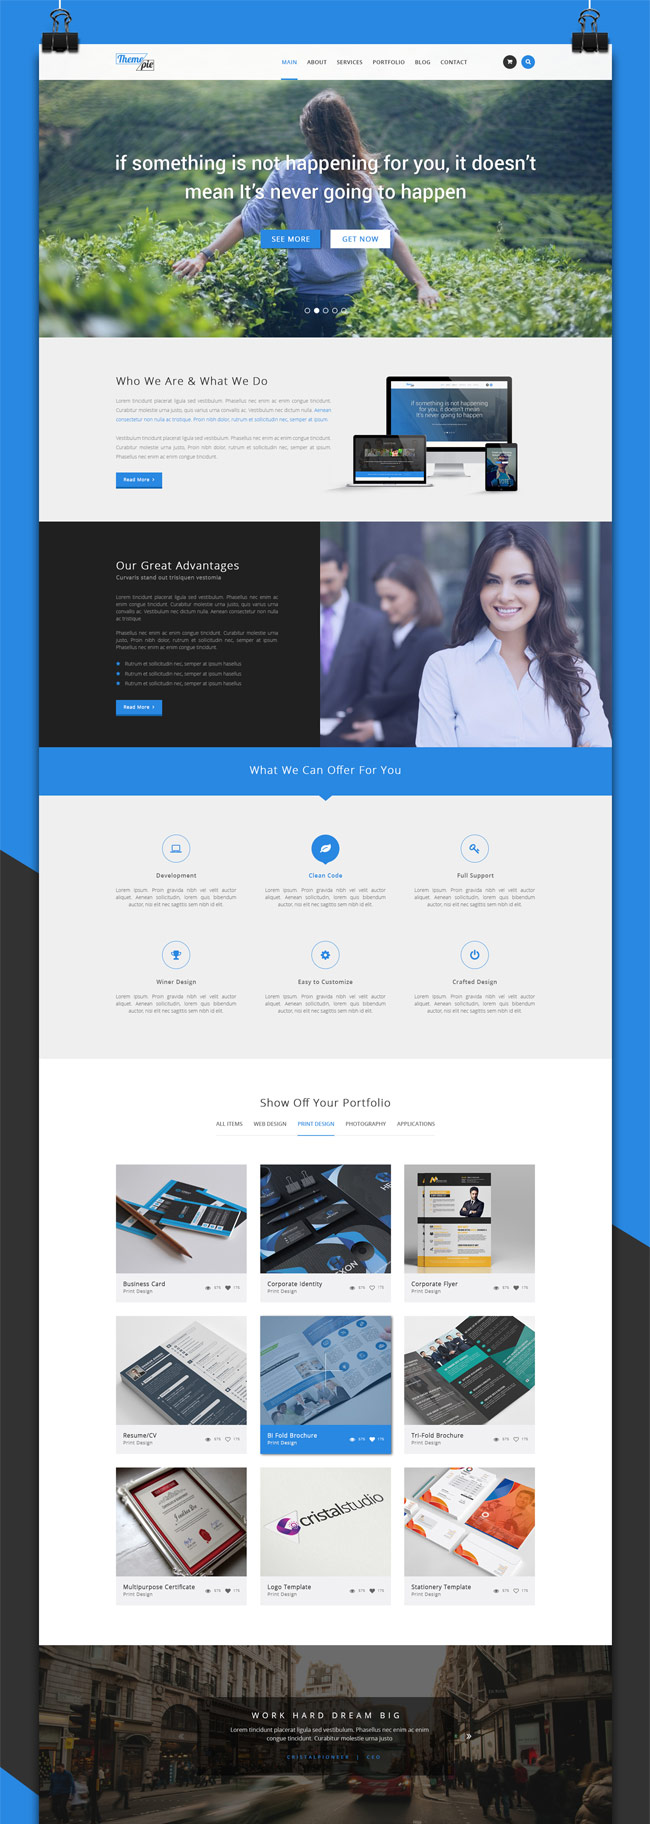 30 free psd portfolio website templates designmaz themepie is a free corporate portfolio psd website template all these free psd website templates can be used for personal or commercial use pronofoot35fo Image collections